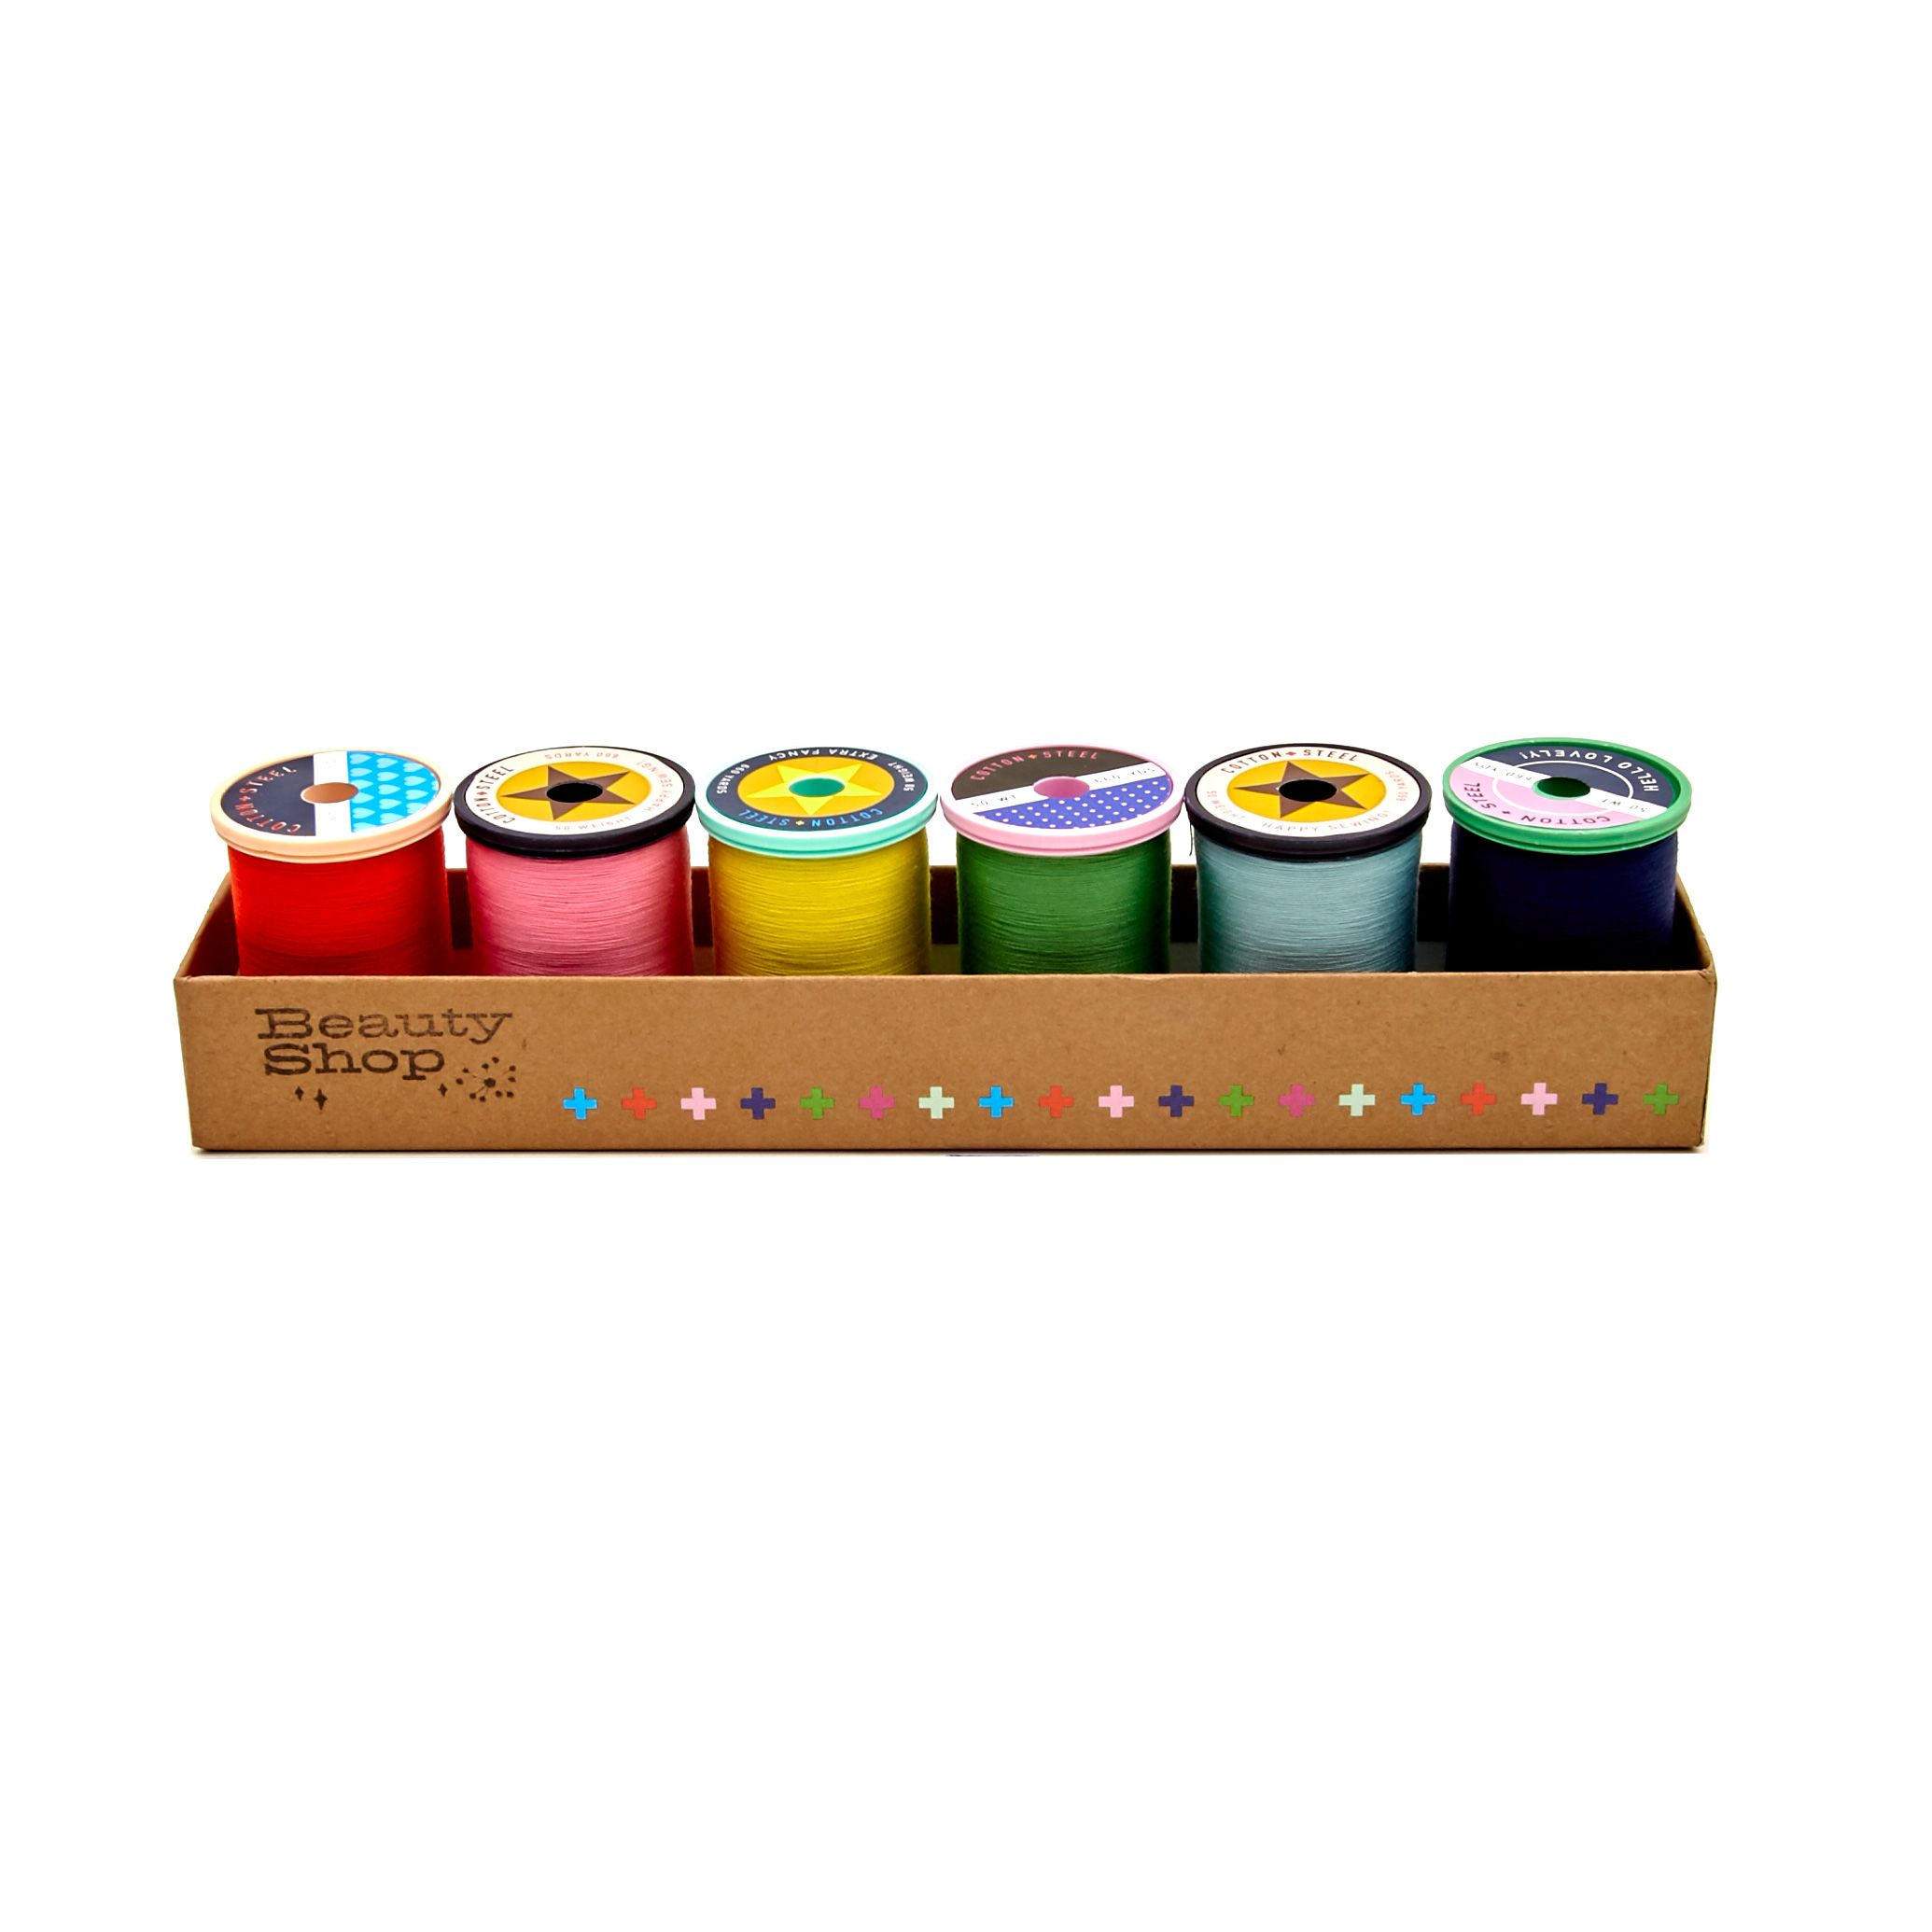 Image of Cotton + Steel 50wt. Cotton Thread Set by Sulky-Beauty Shop